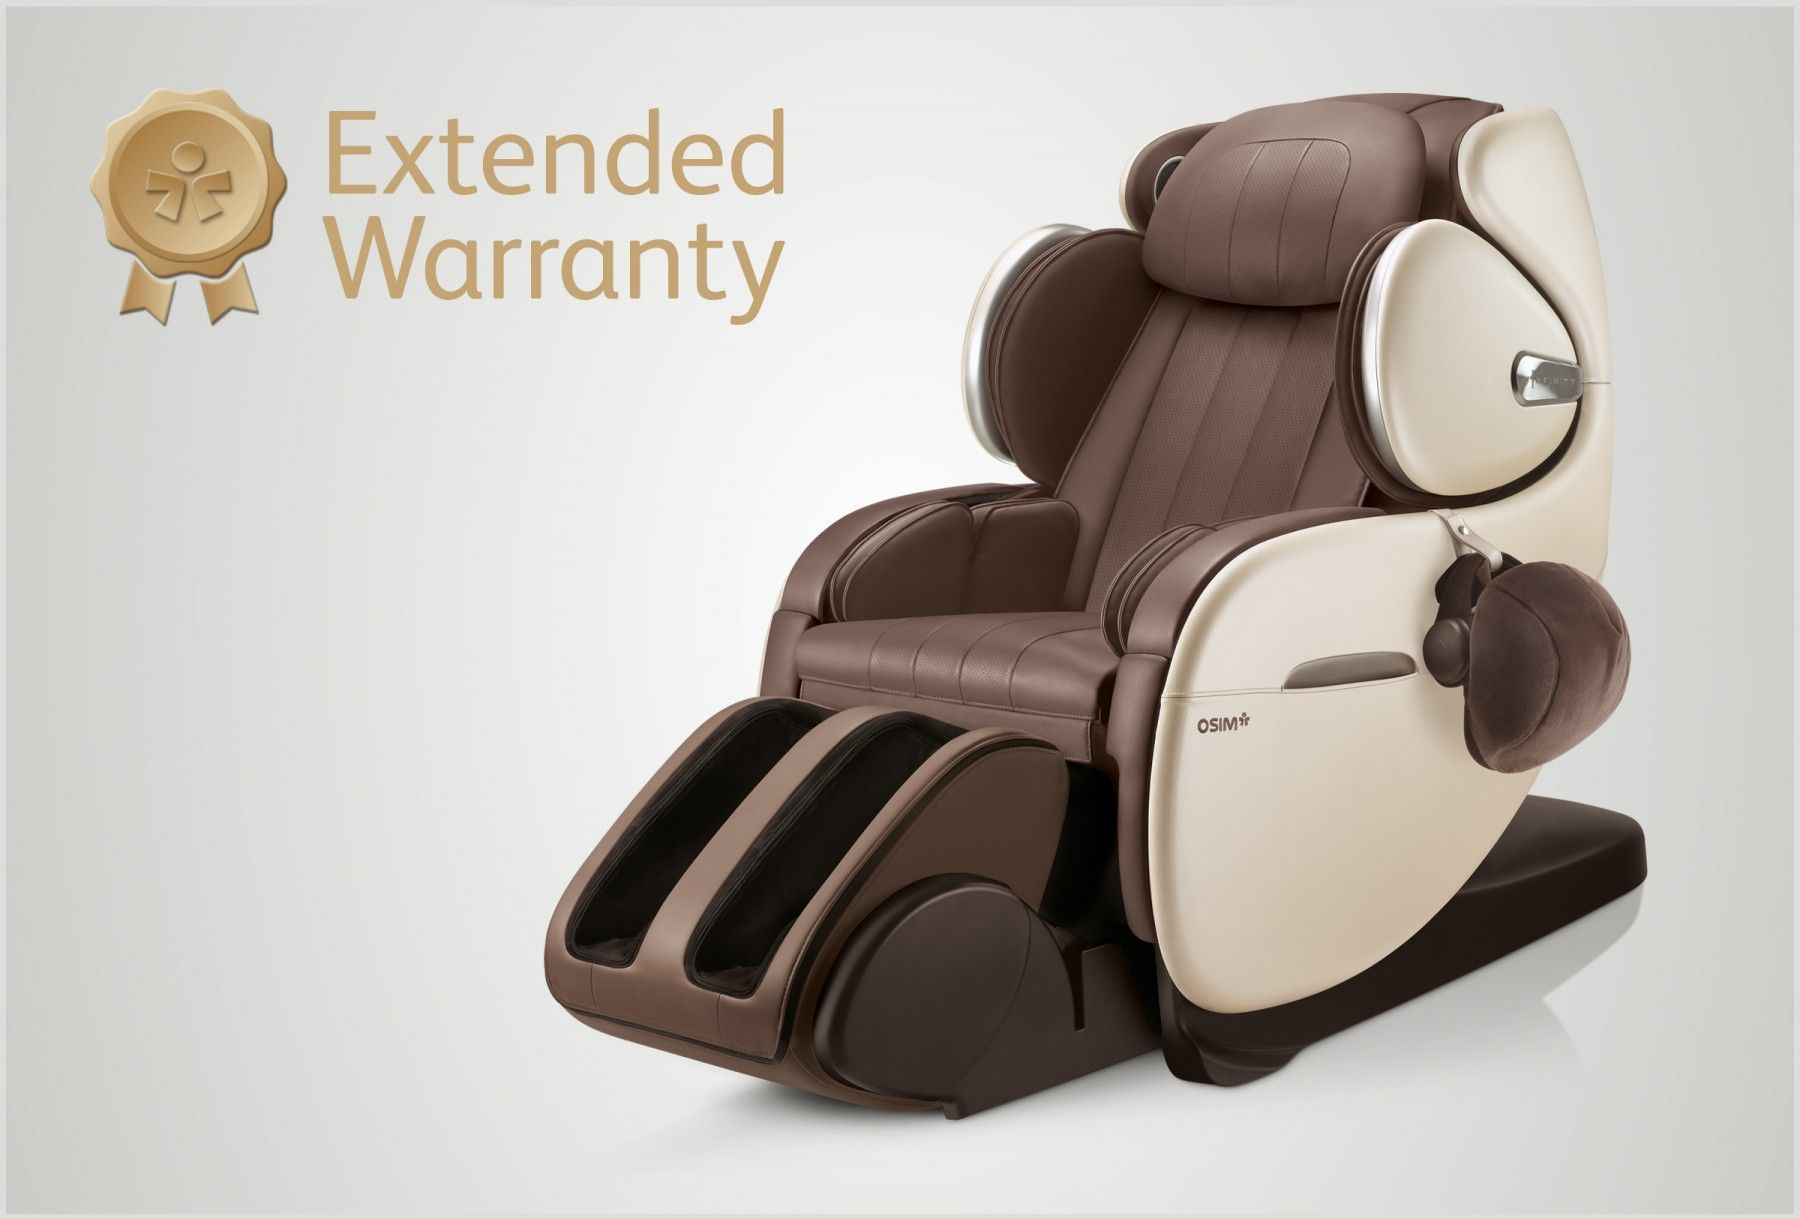 OSIM SG 2 Years Extended Warranty for uInfinity Luxe